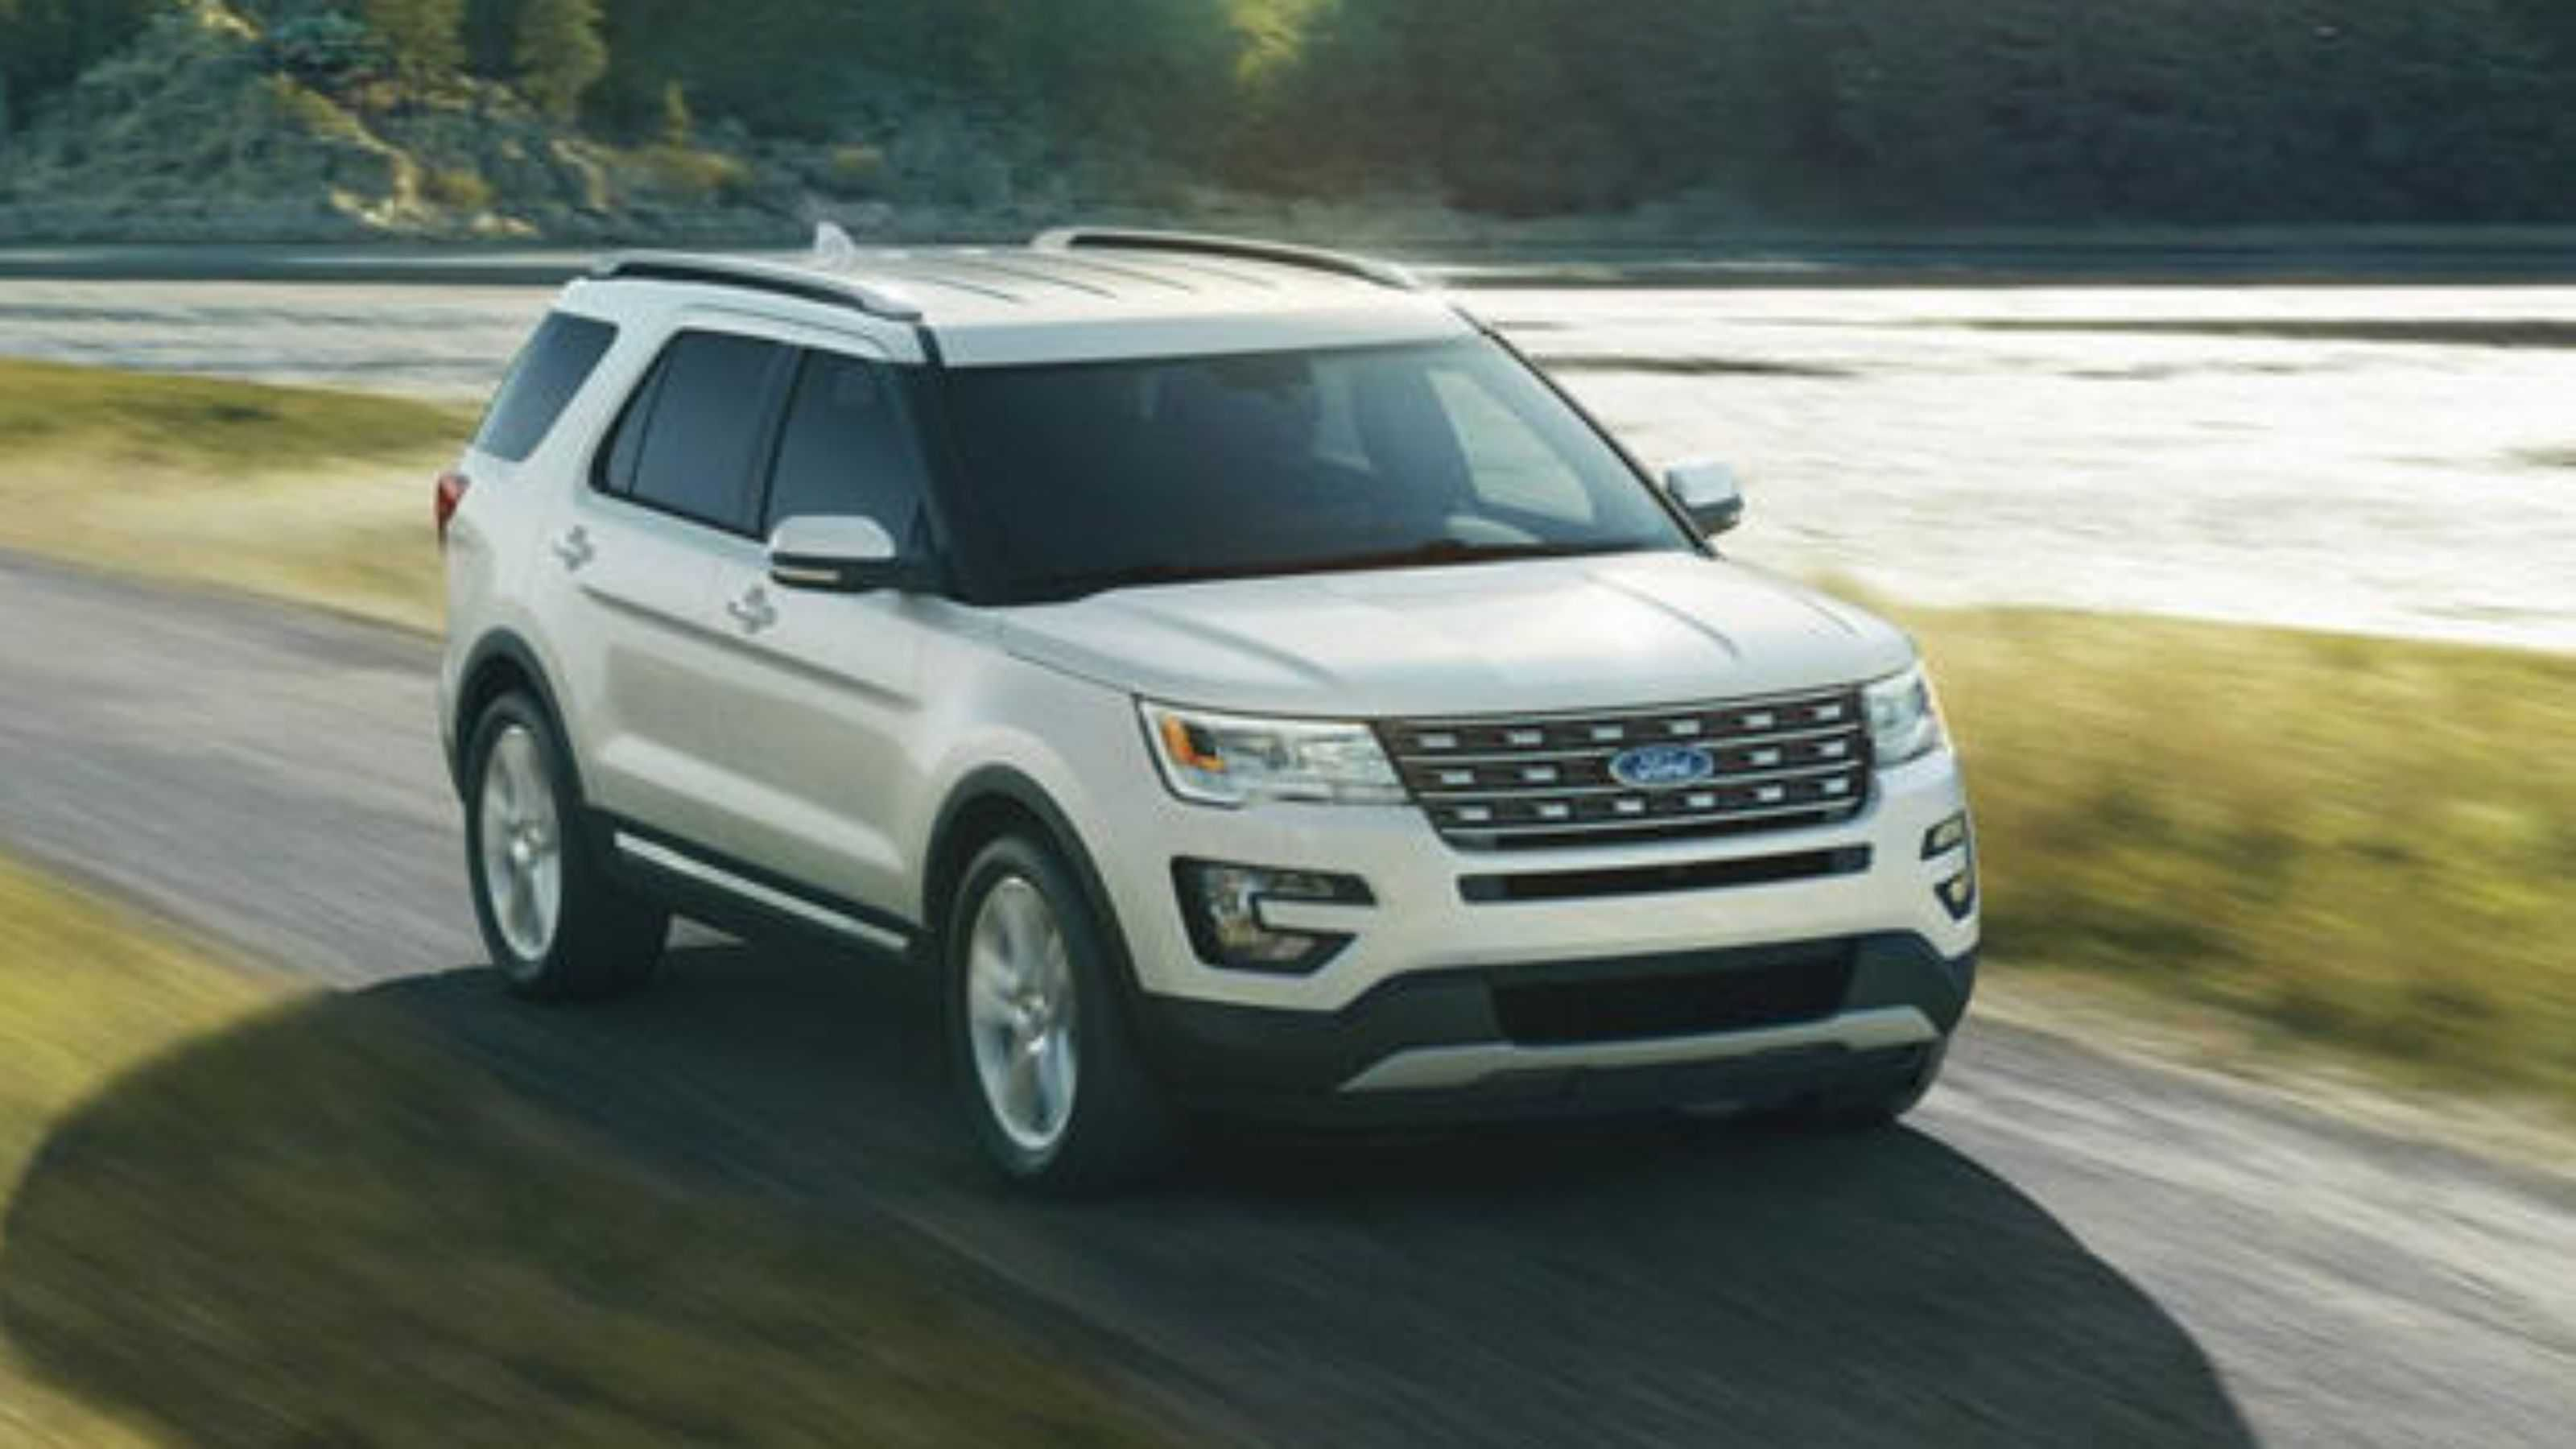 2016 Ford Explorer Limited >> 2018 Ford Explorer white | Ford explorer, Super sport cars ...